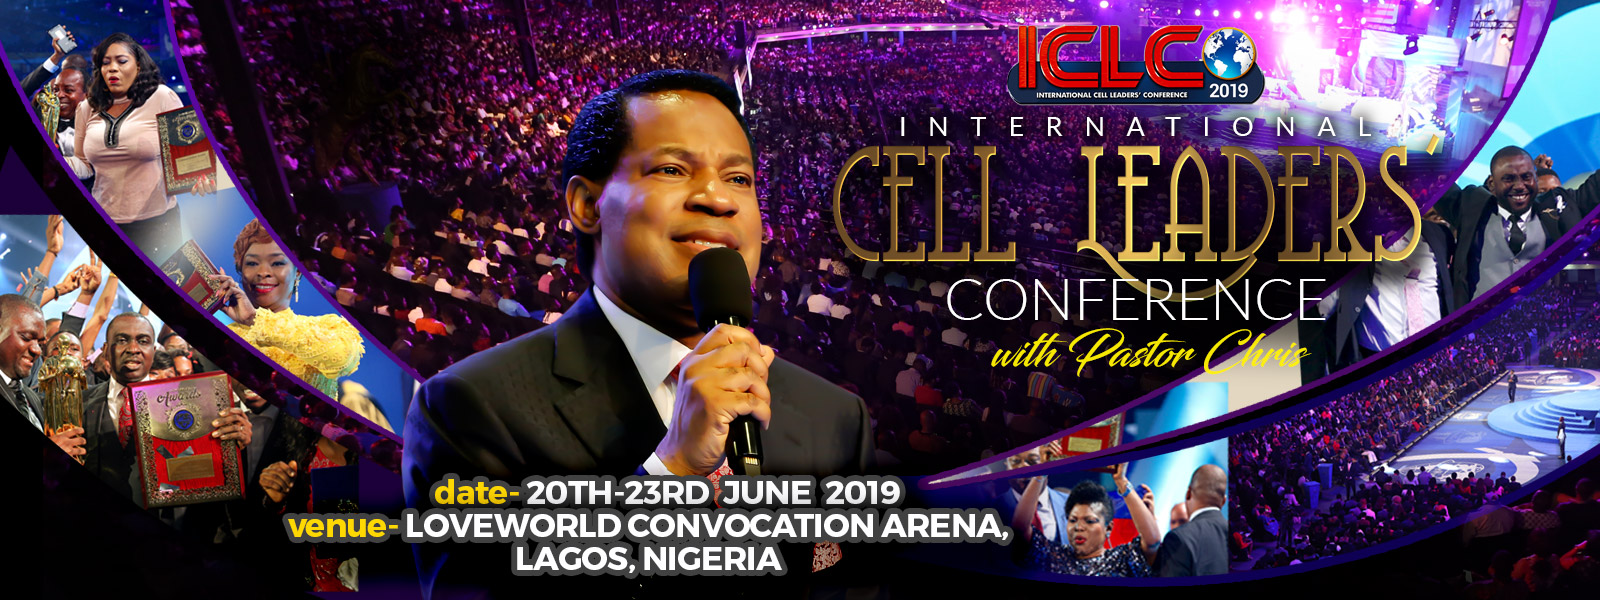 INTERNATIONAL CELL LEADERS' CONFERENCE